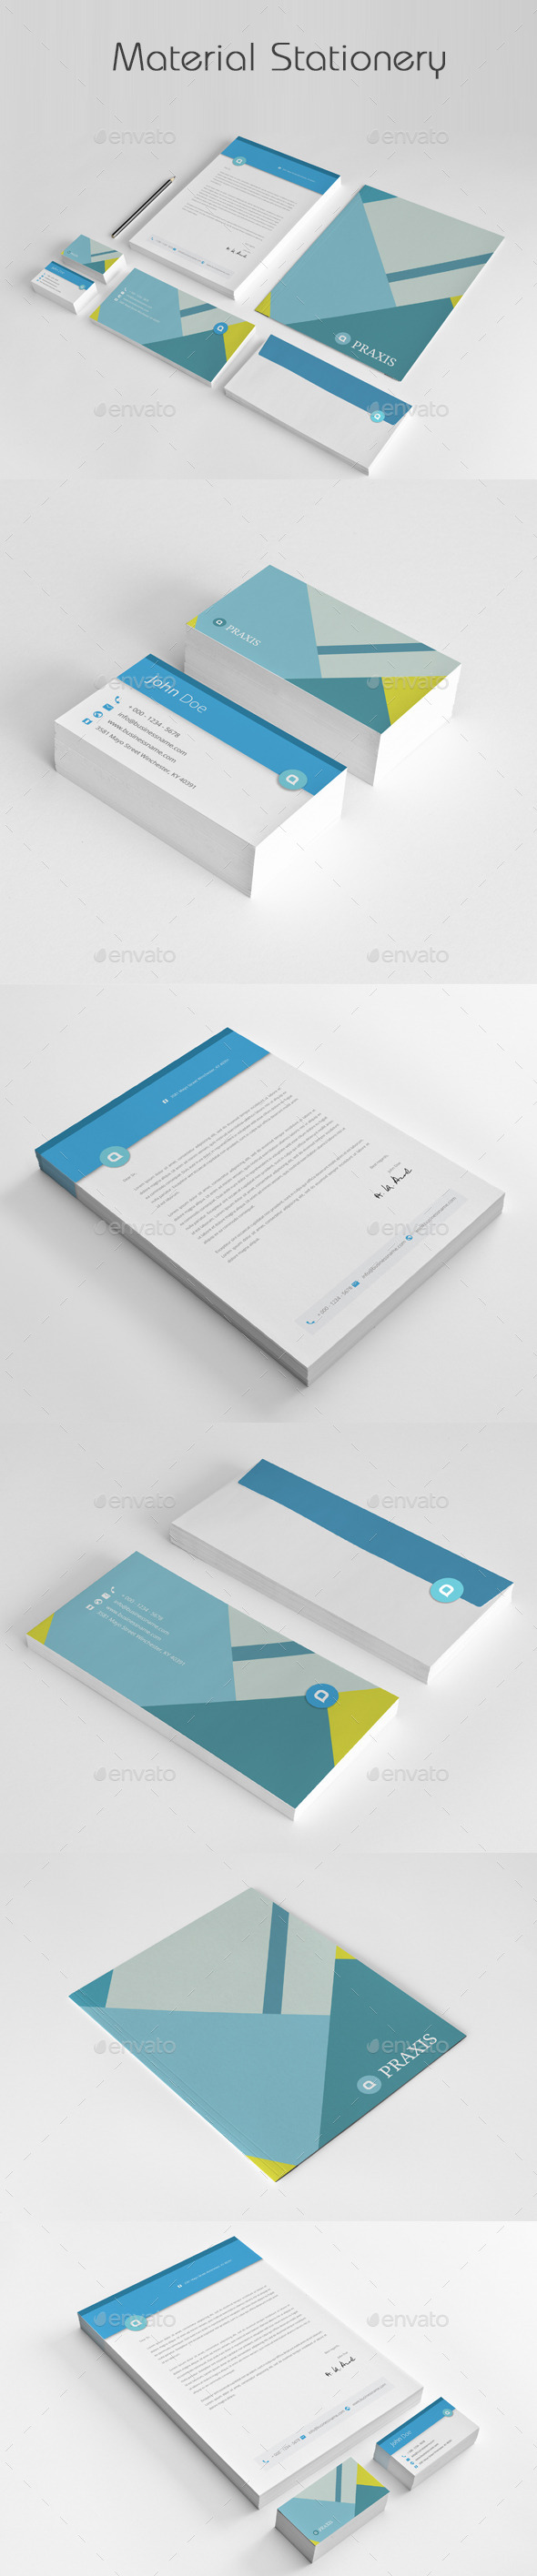 GraphicRiver Material Stationery 11173674